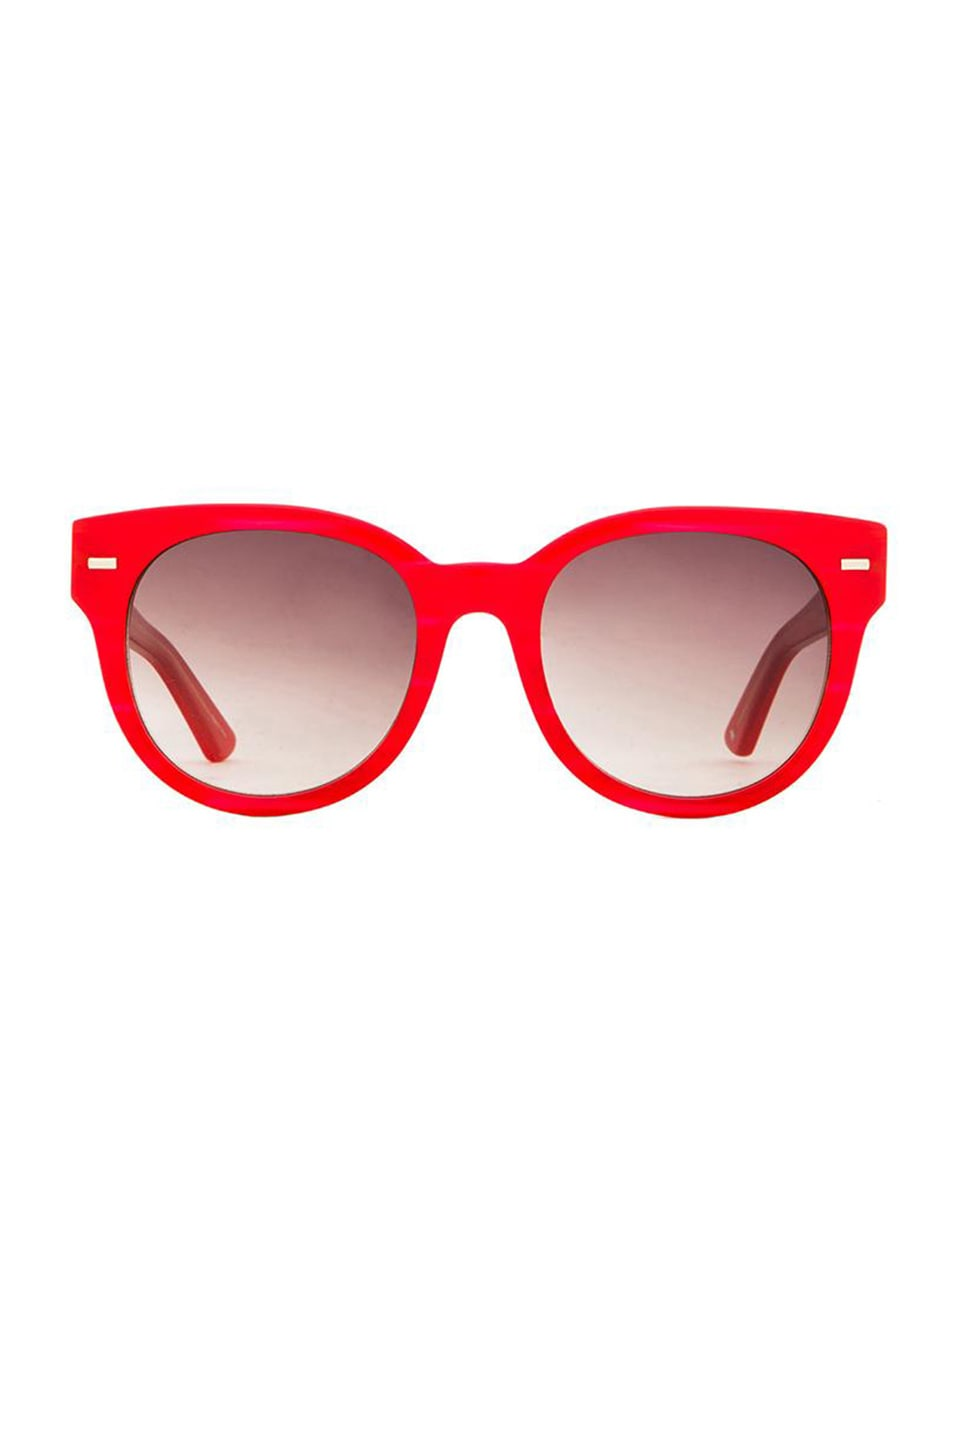 Equipment The Lana Sunglasses in Brown Gradient & Semi-Matte Light Gold & Red